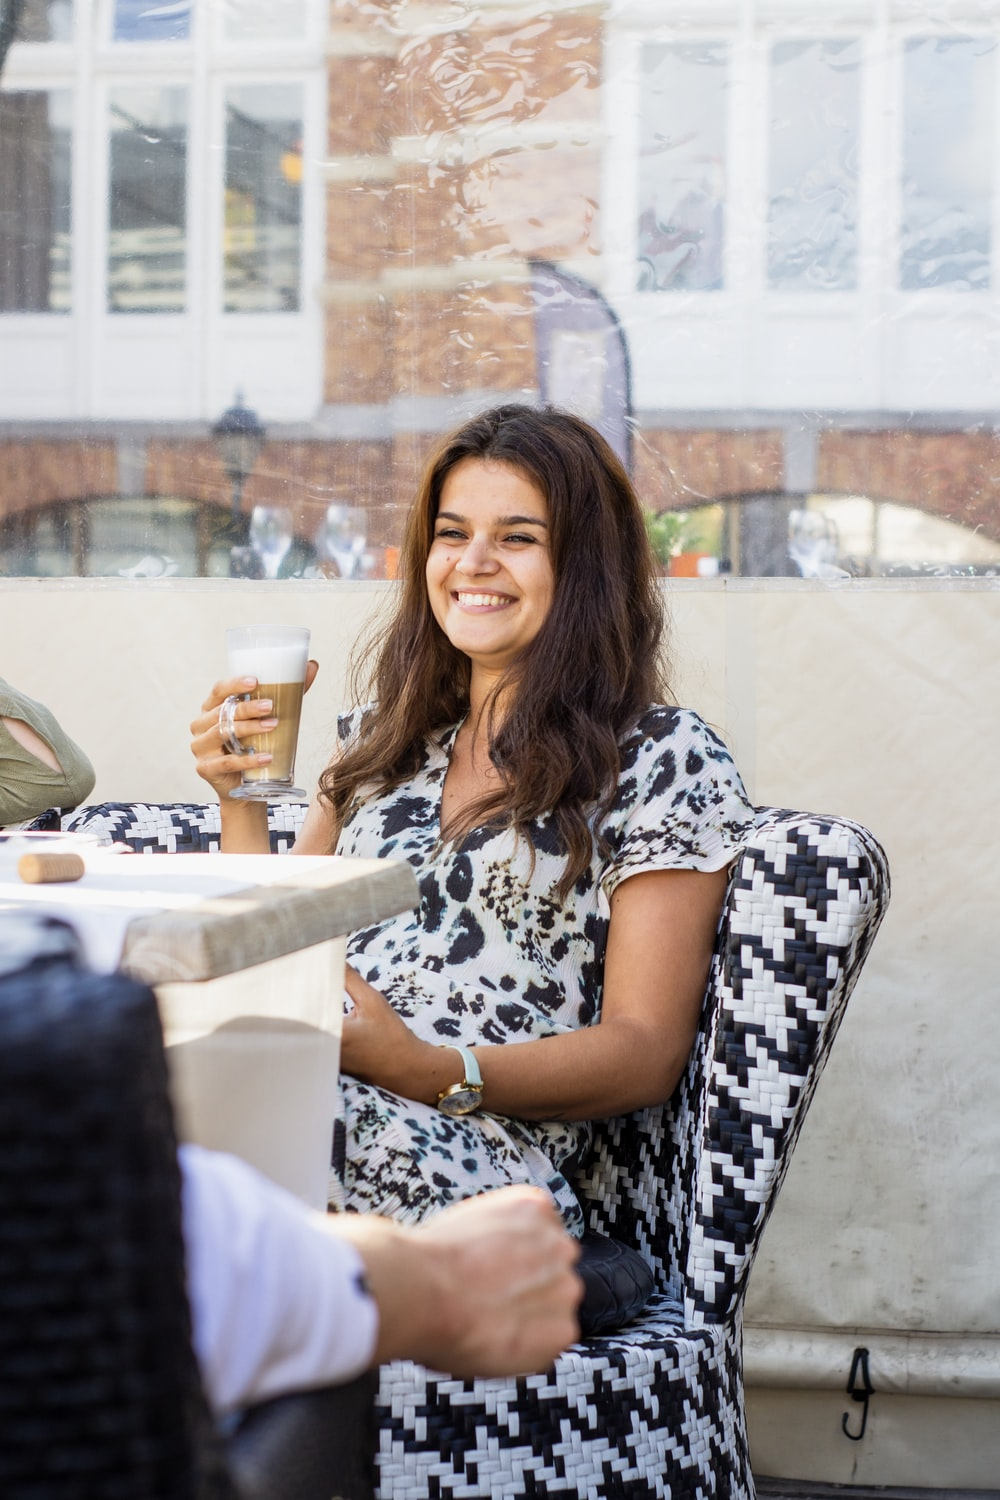 smiling woman holding cup of beverage